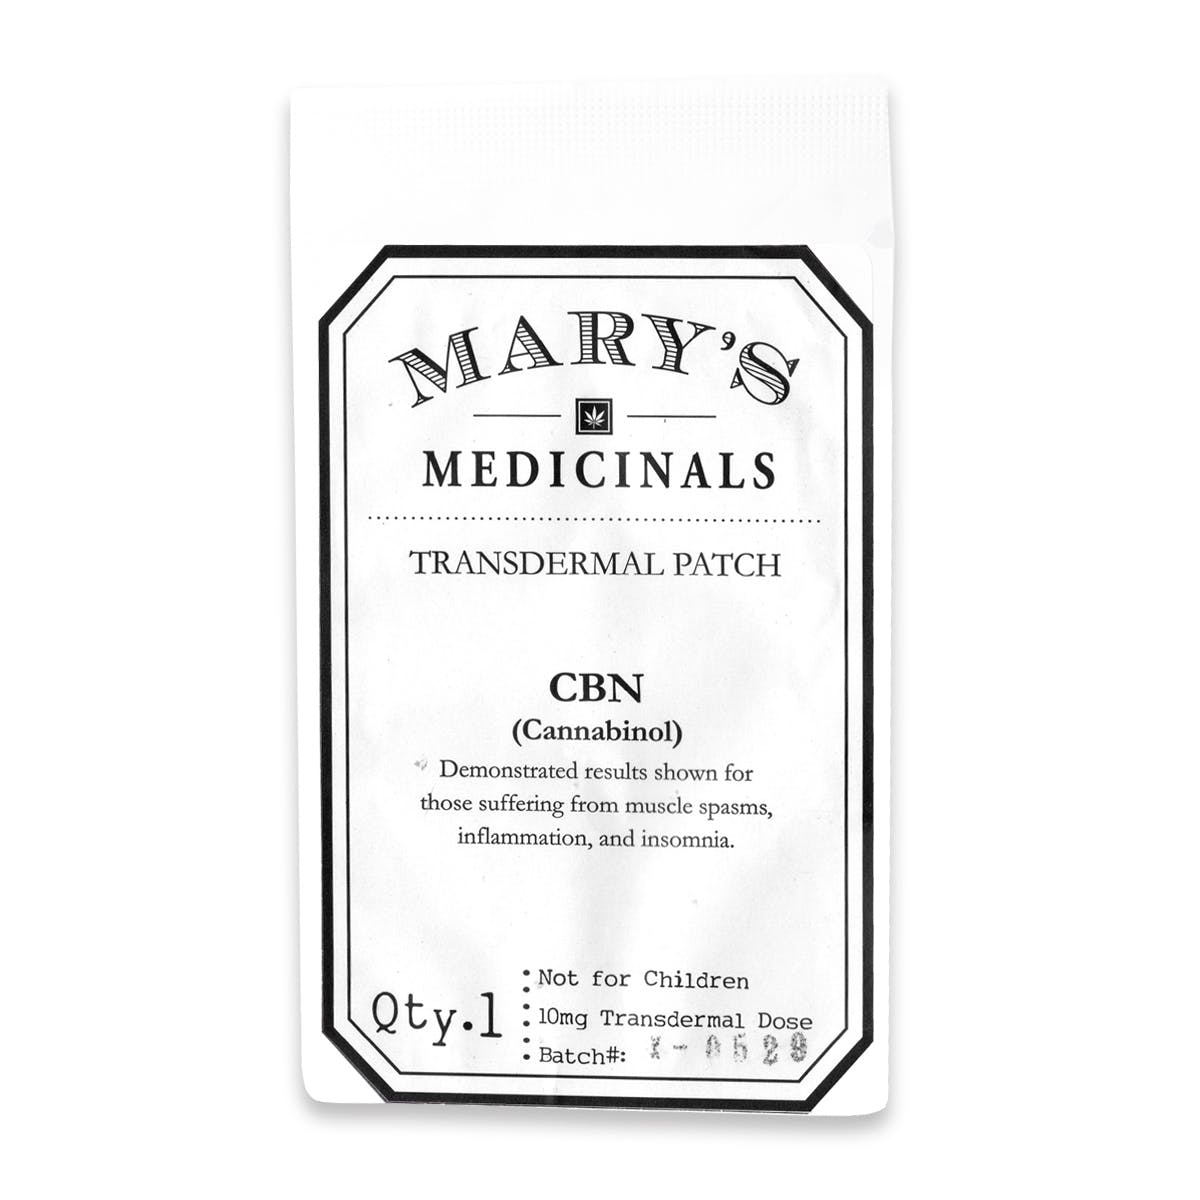 marijuana-dispensaries-ascend-medical-cannabis-co-in-lakewood-cbn-transdermal-patch-2c-10mg-med